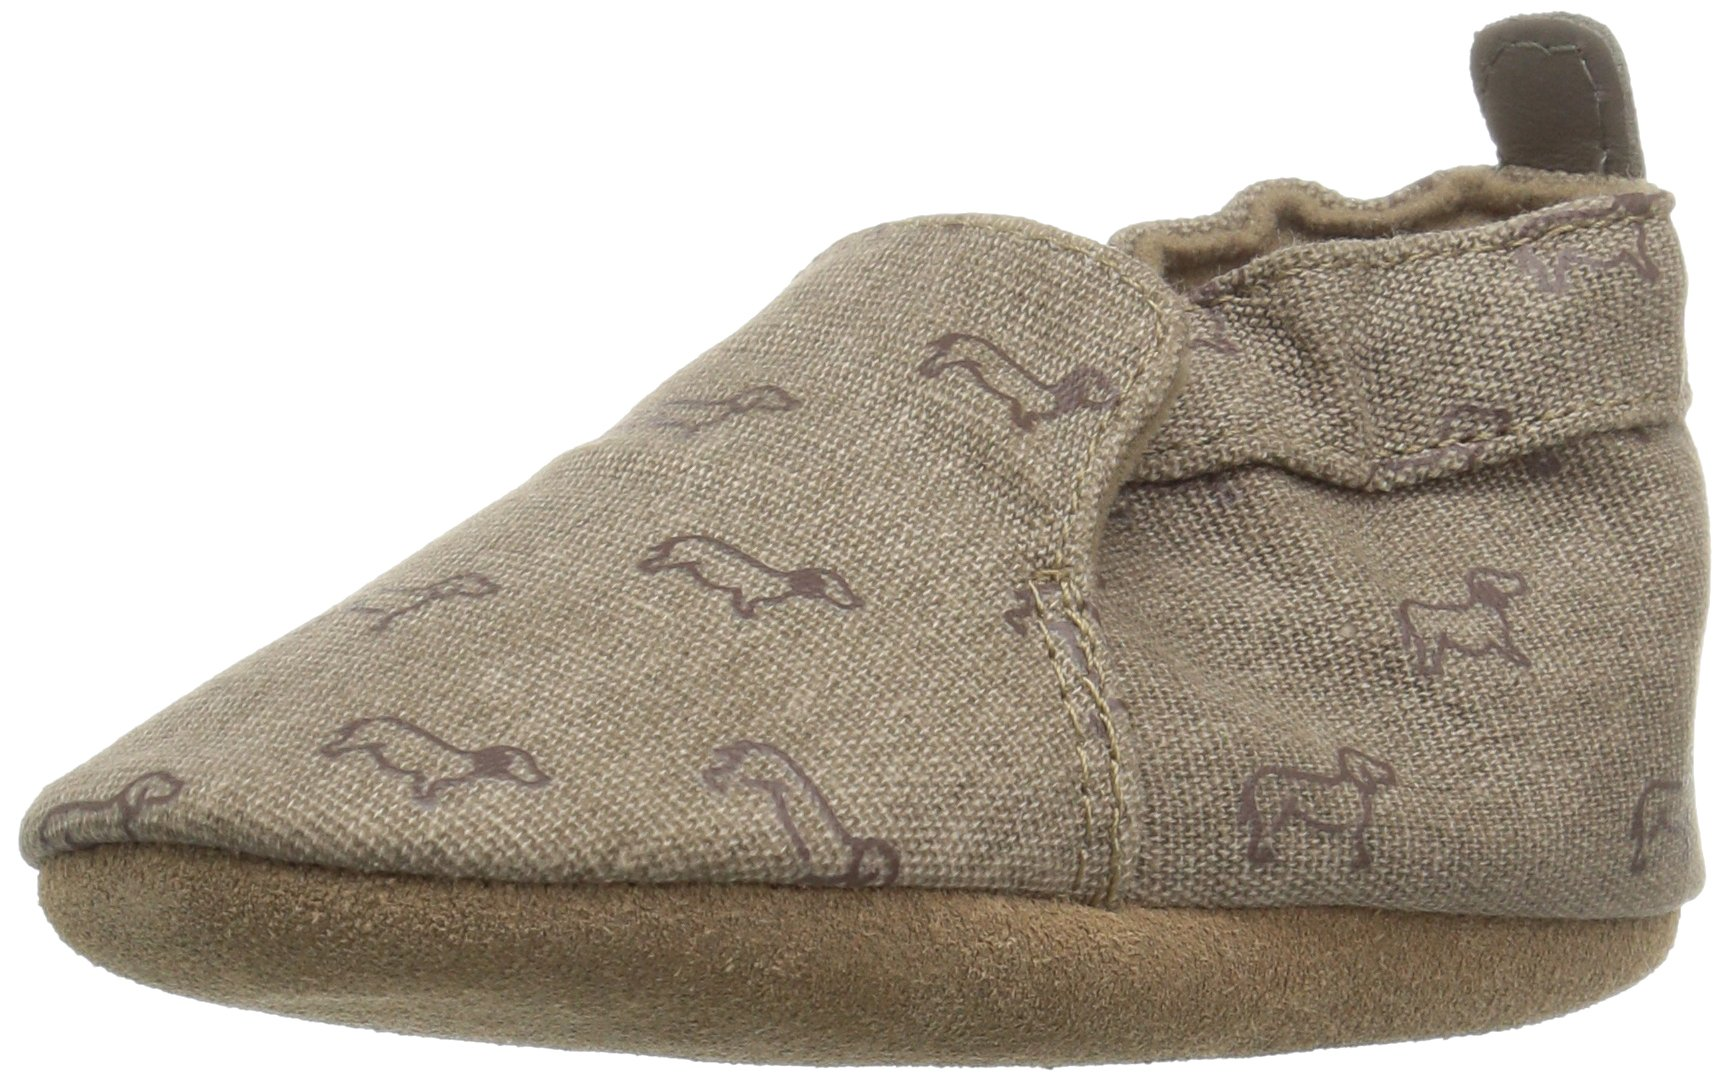 Robeez Boys' Soft Soles, Puppy Love Brown, 2-3 Yrs M US Infant